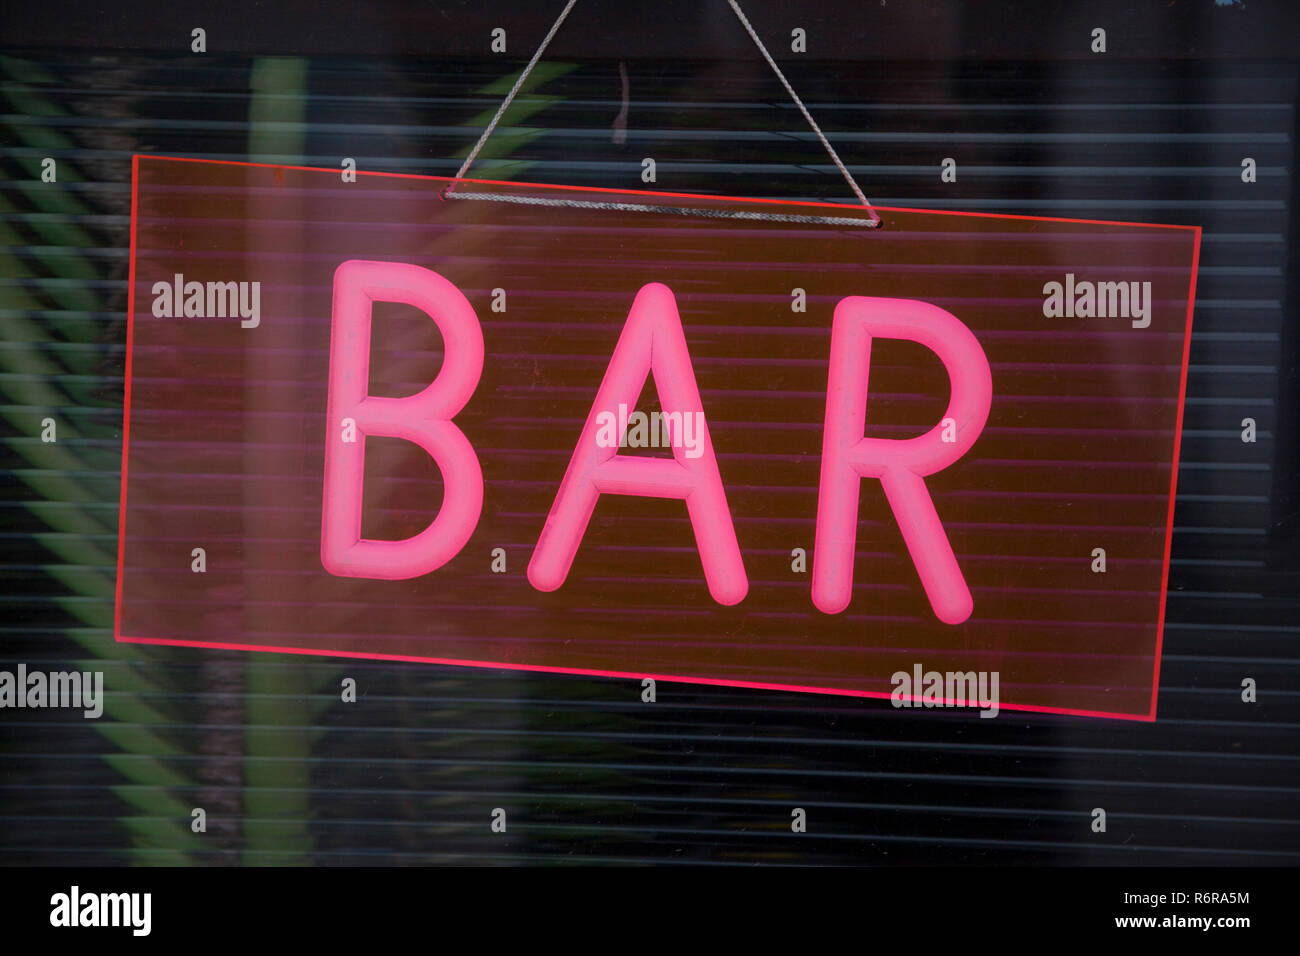 A colourful neon sign for a bar in Skibbereen, West Cork, Eire, the Republic of Ireland - Stock Image